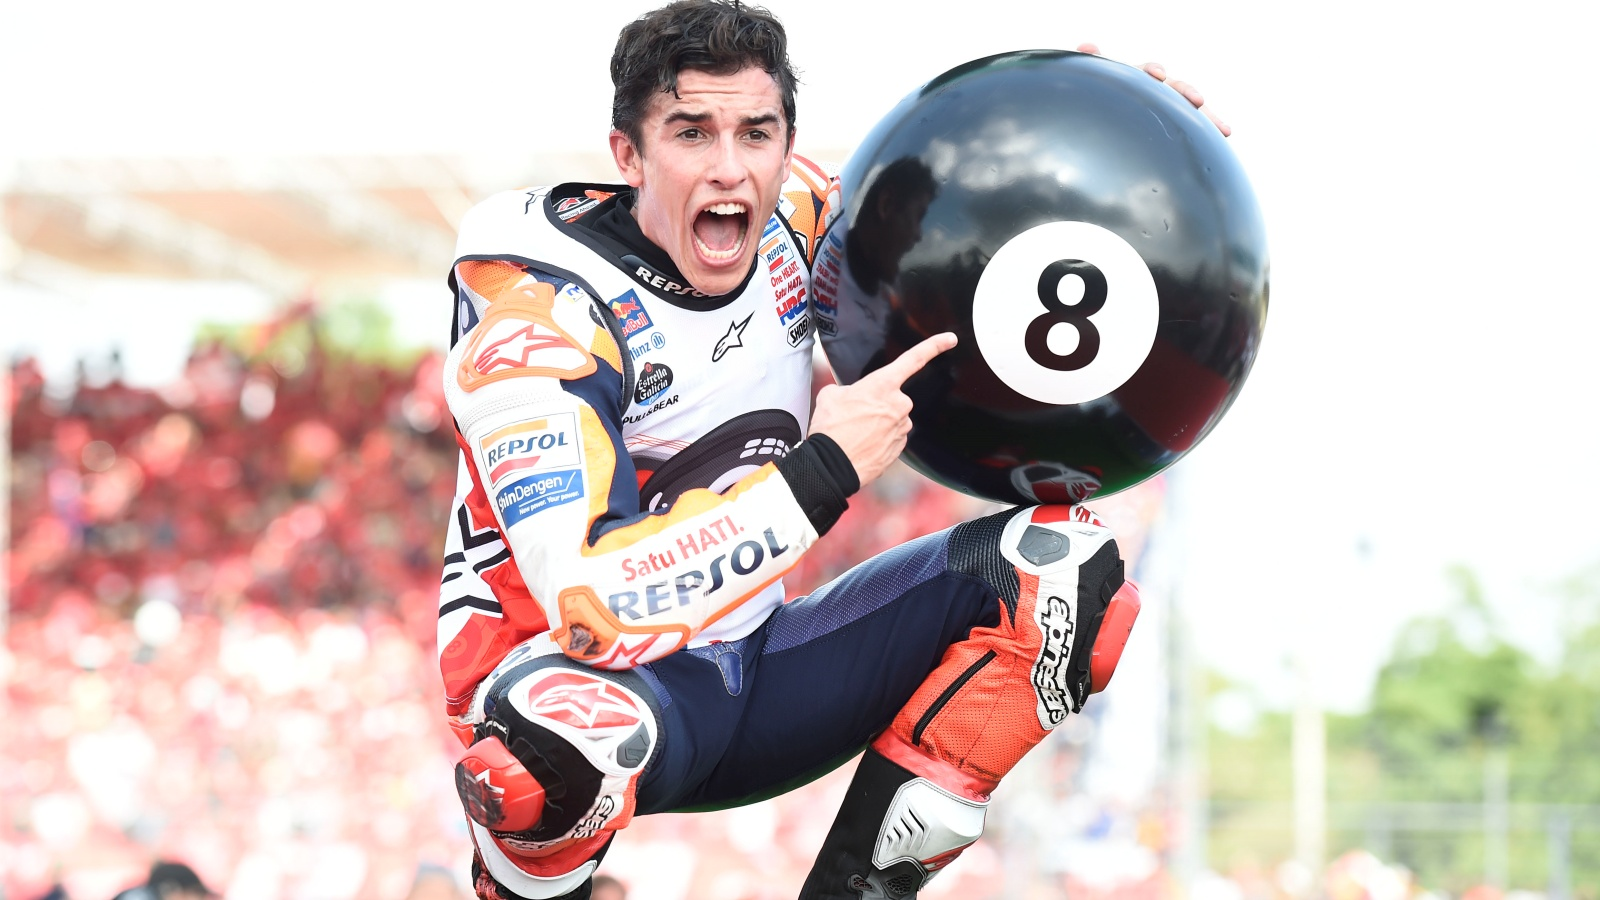 Marc Márquez v.2019, un software casi perfecto